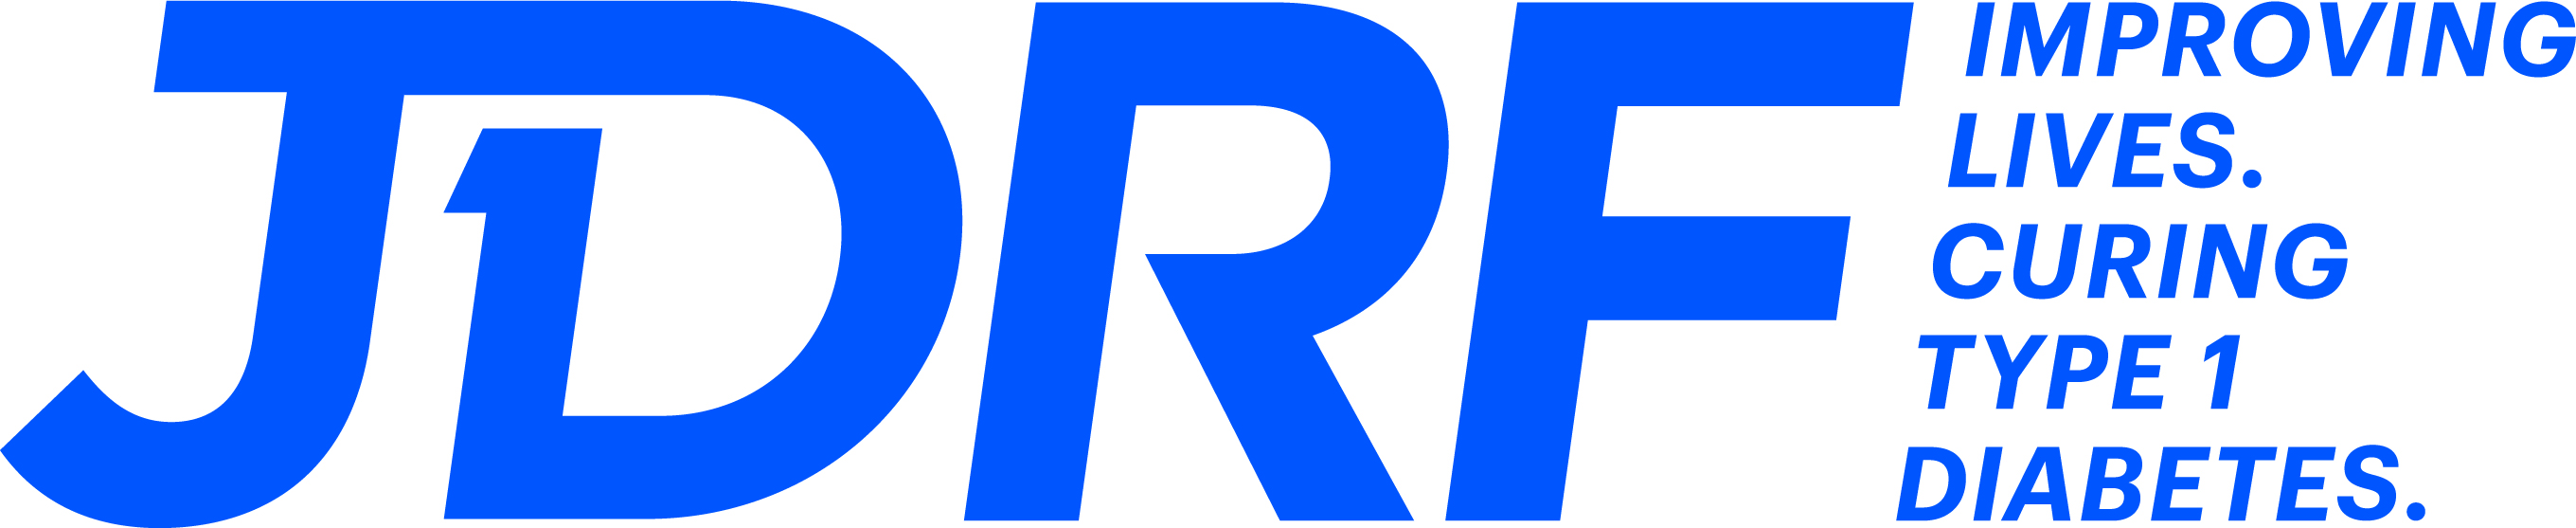 JDRF, the type 1 diabetes charity logo